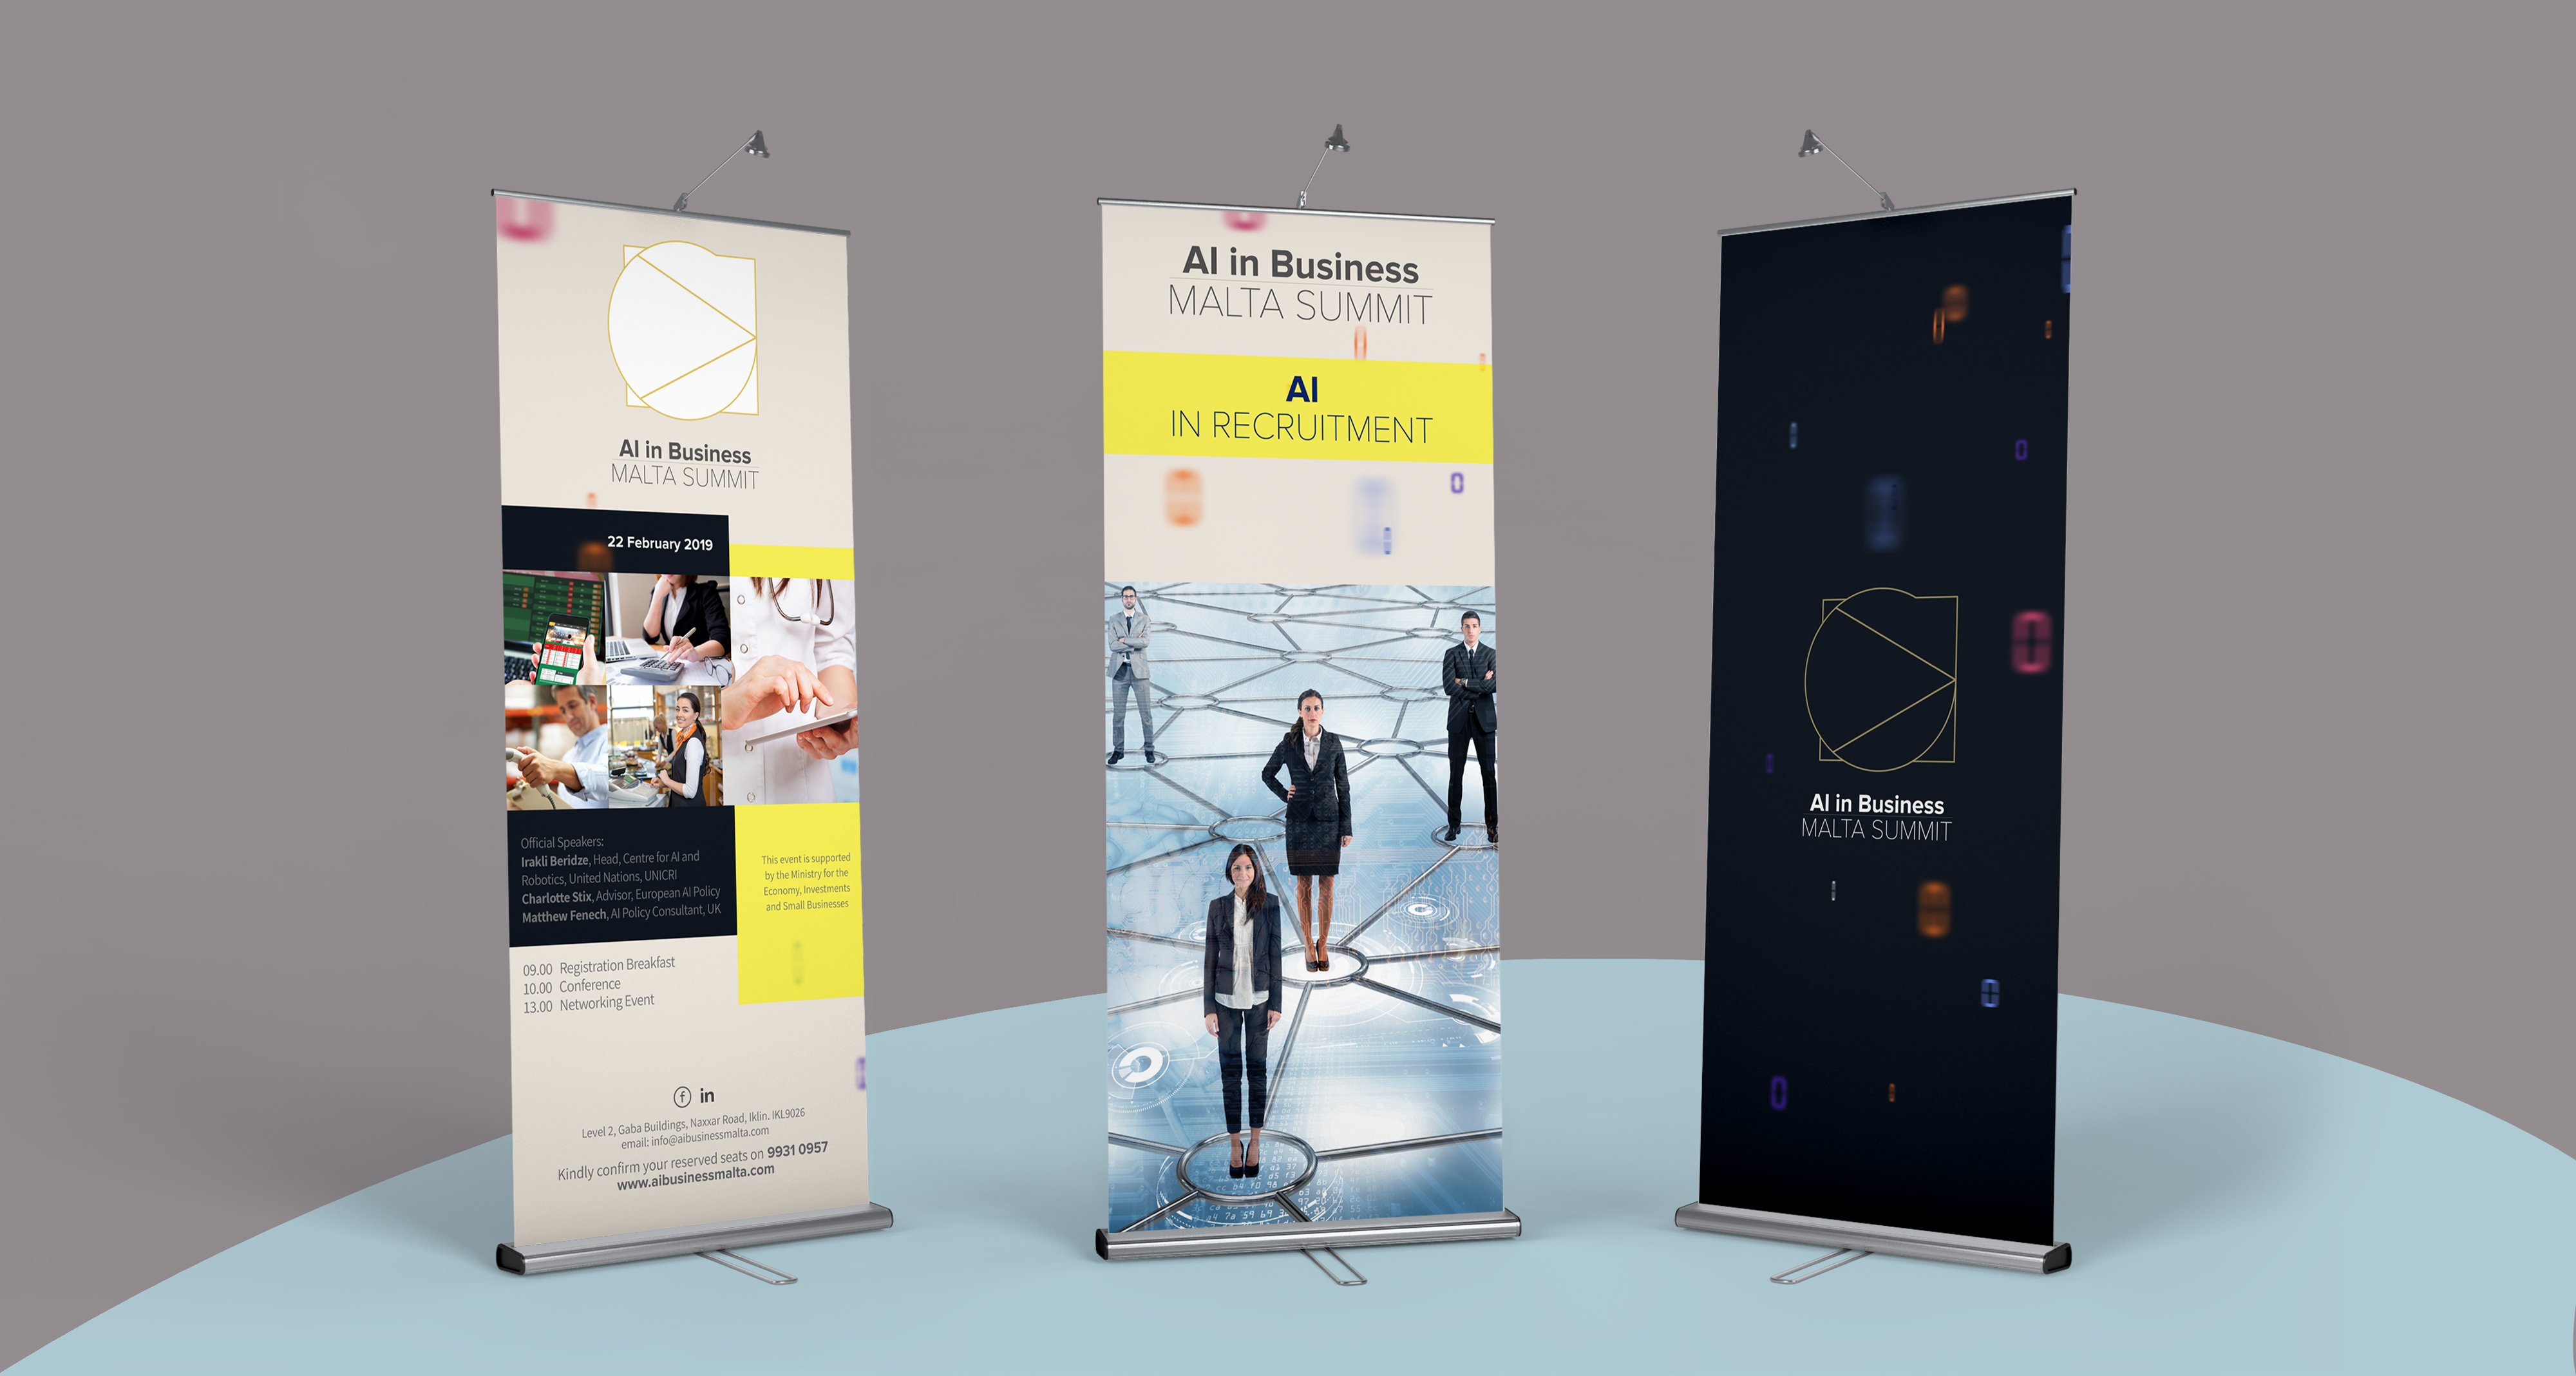 AI Malta Summit roll up banners